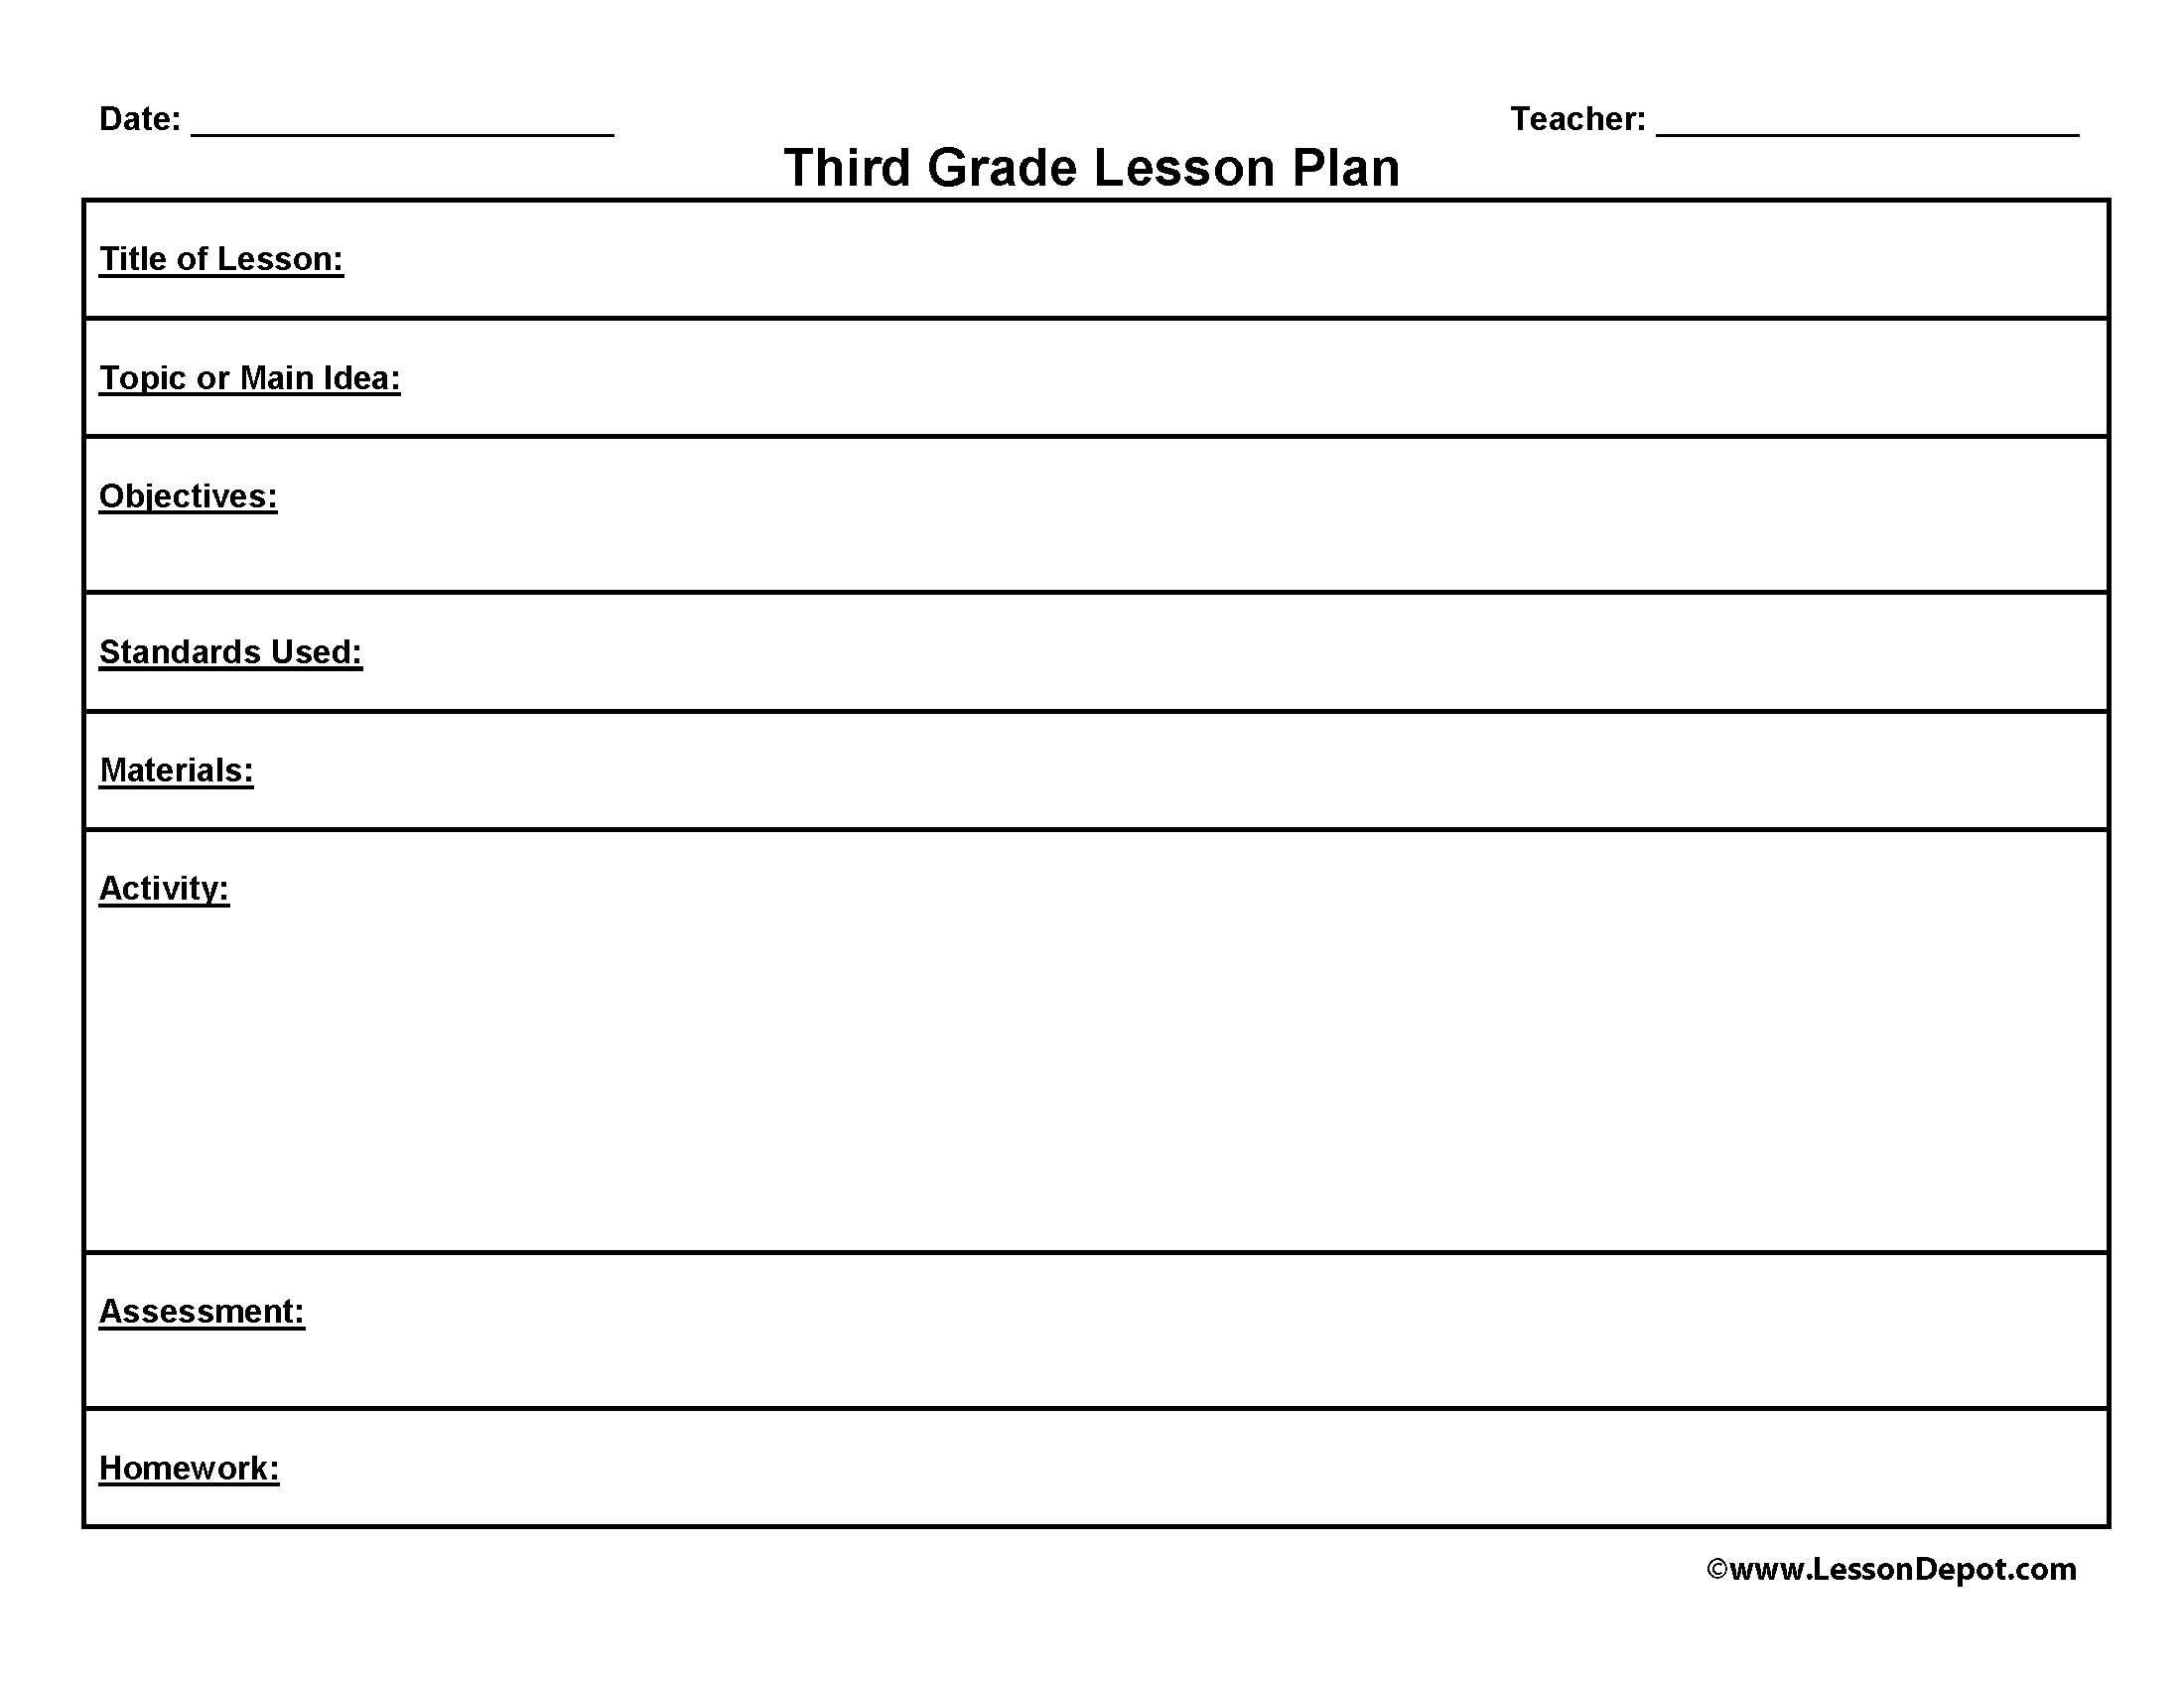 10 Fantastic Lesson Plan Ideas For Elementary third grade lesson plan template to homeschool or not to